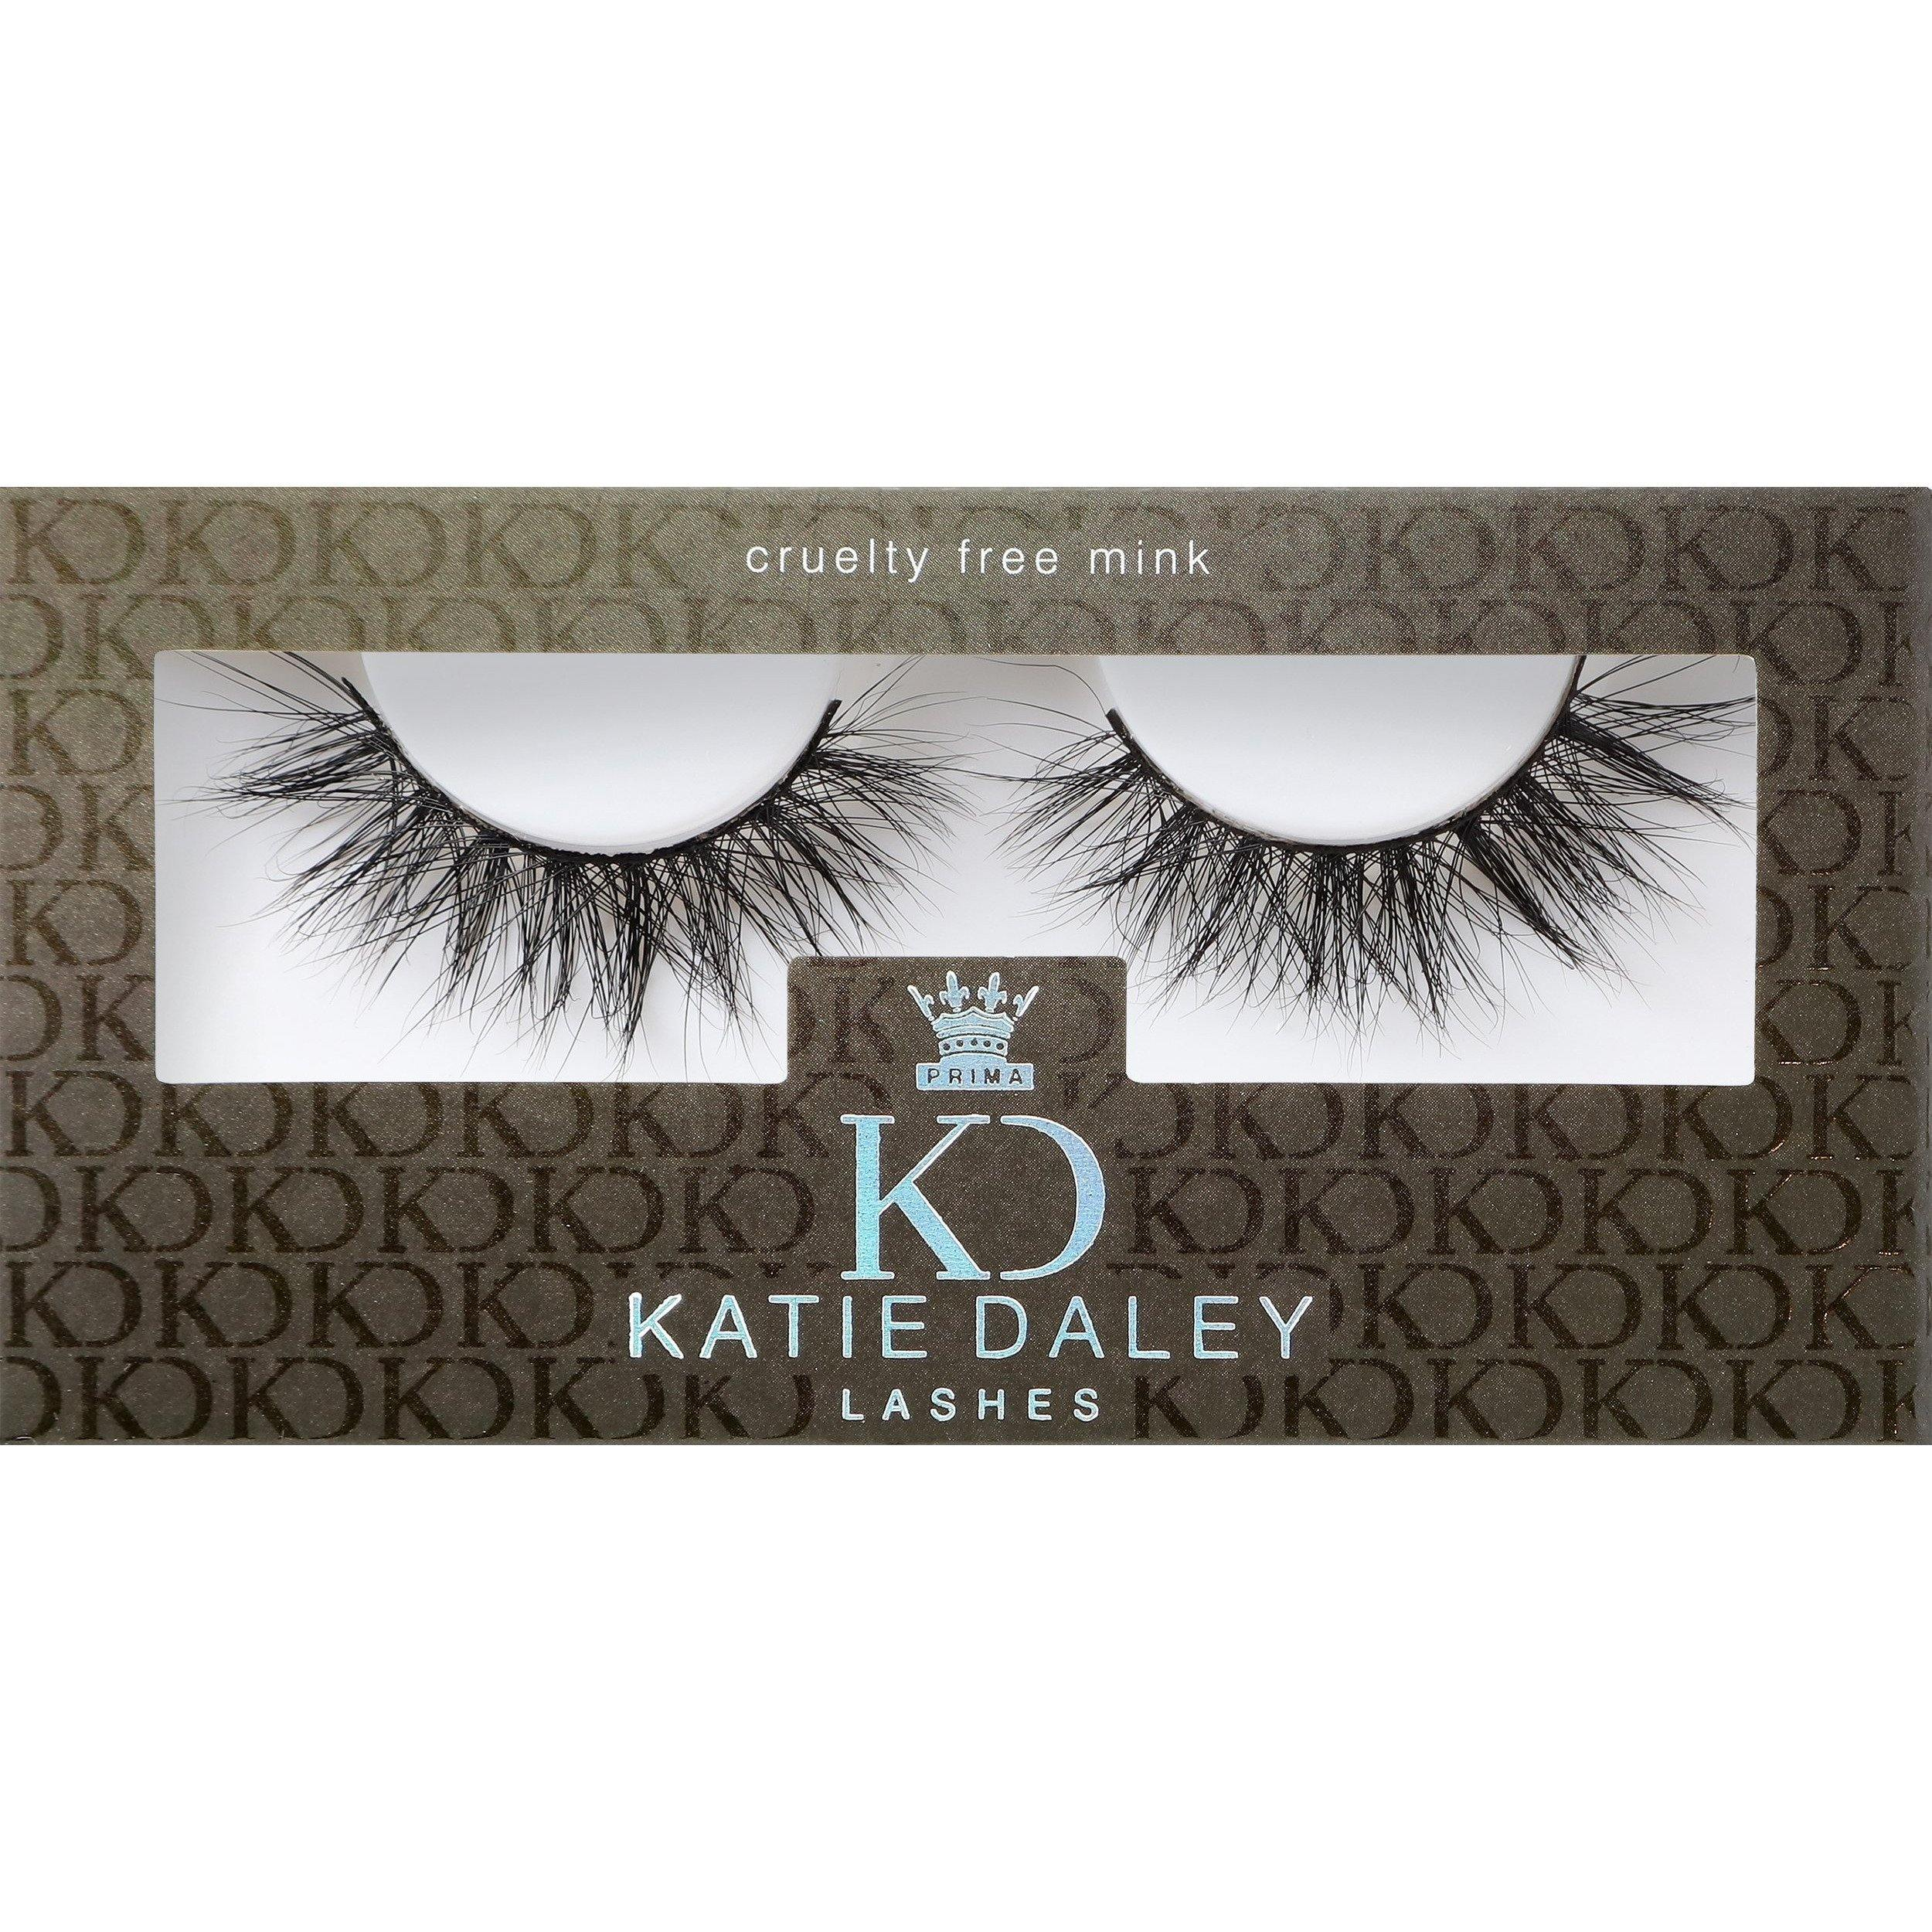 Prima Lash X Katie Daley - The Bride - BeautyGold